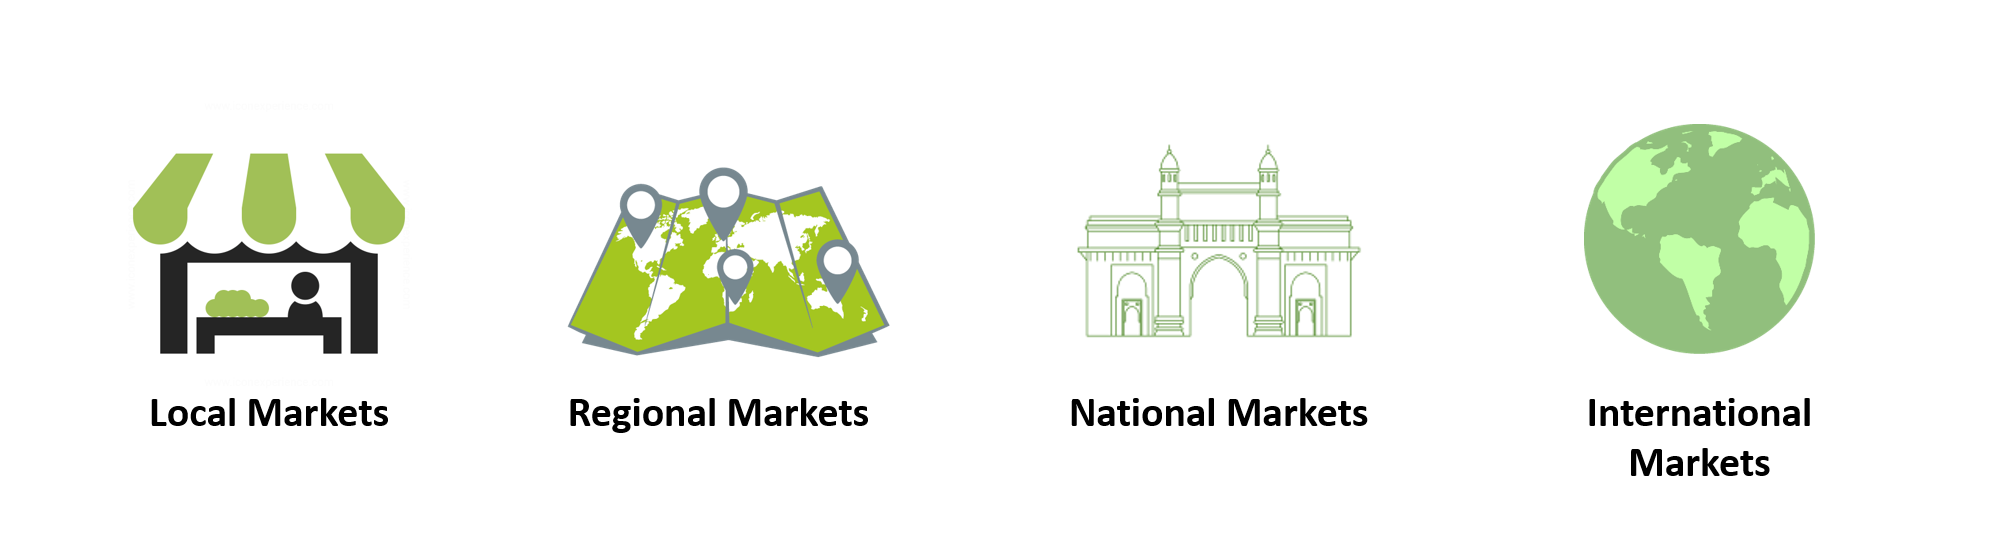 Classification of Markets - Locations